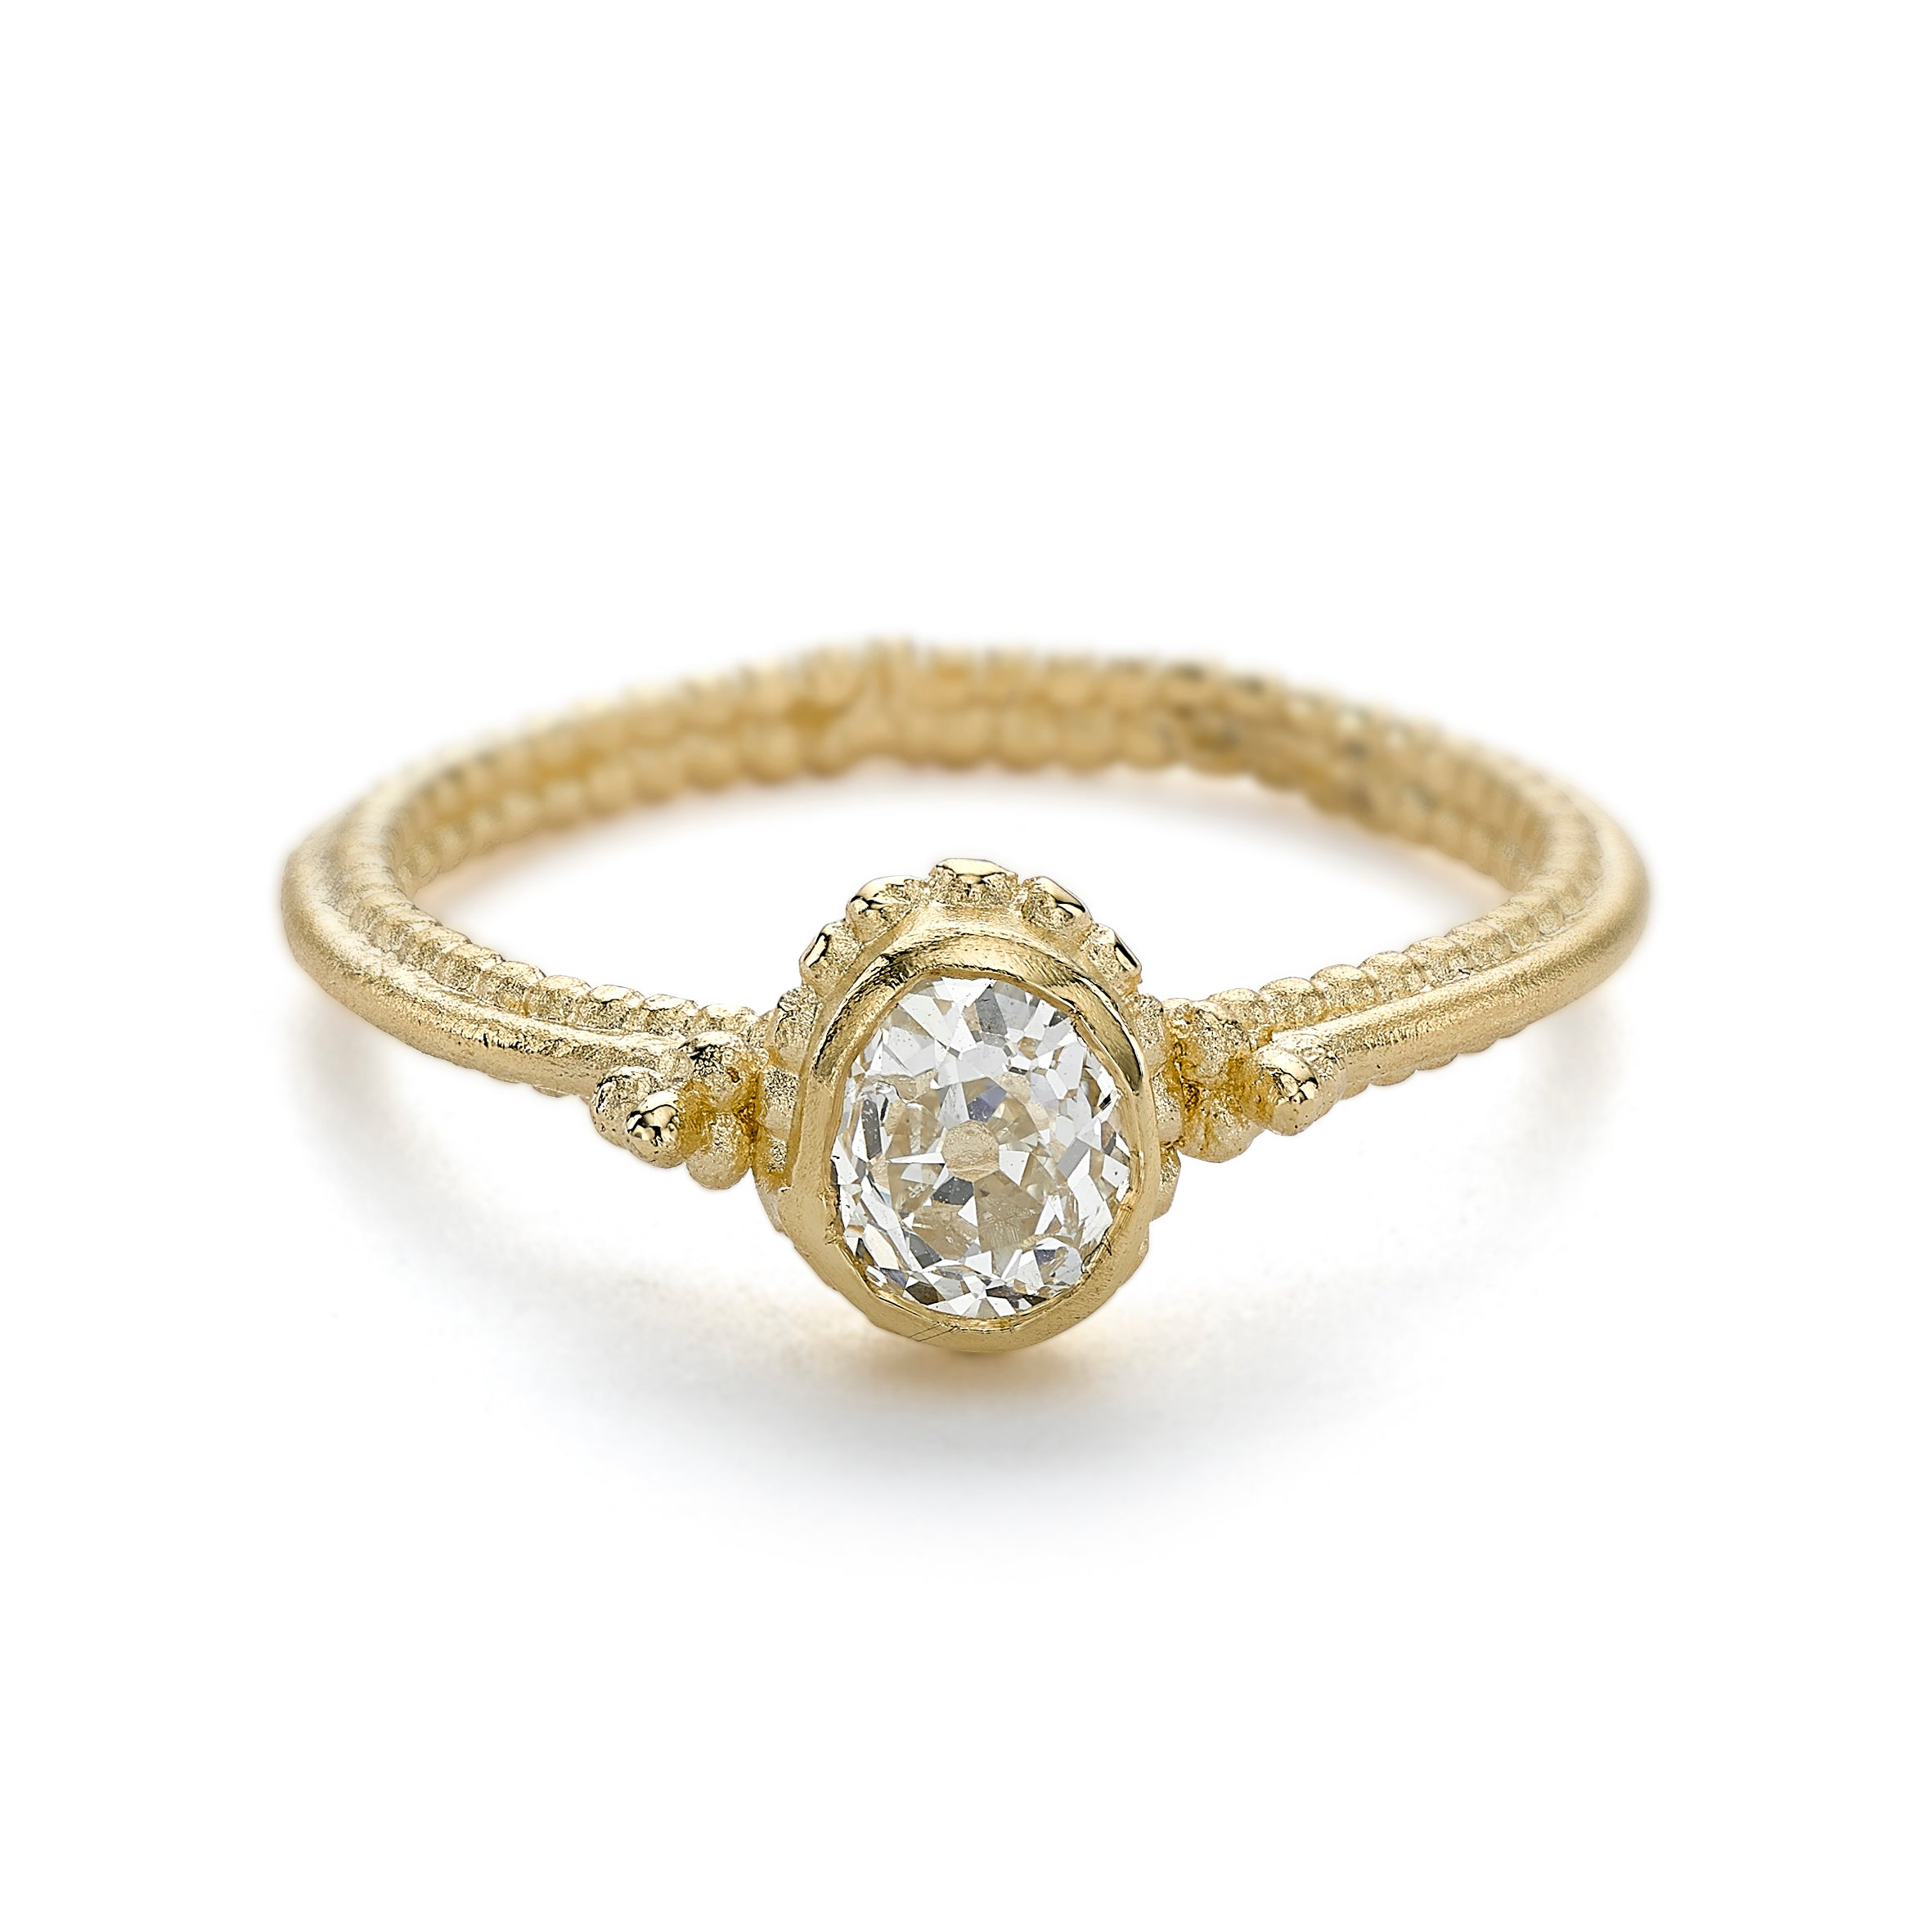 Unique vintage inspired solitaire diamond engagement ring with beaded setting by Ruth Tomlinson, handmade in London